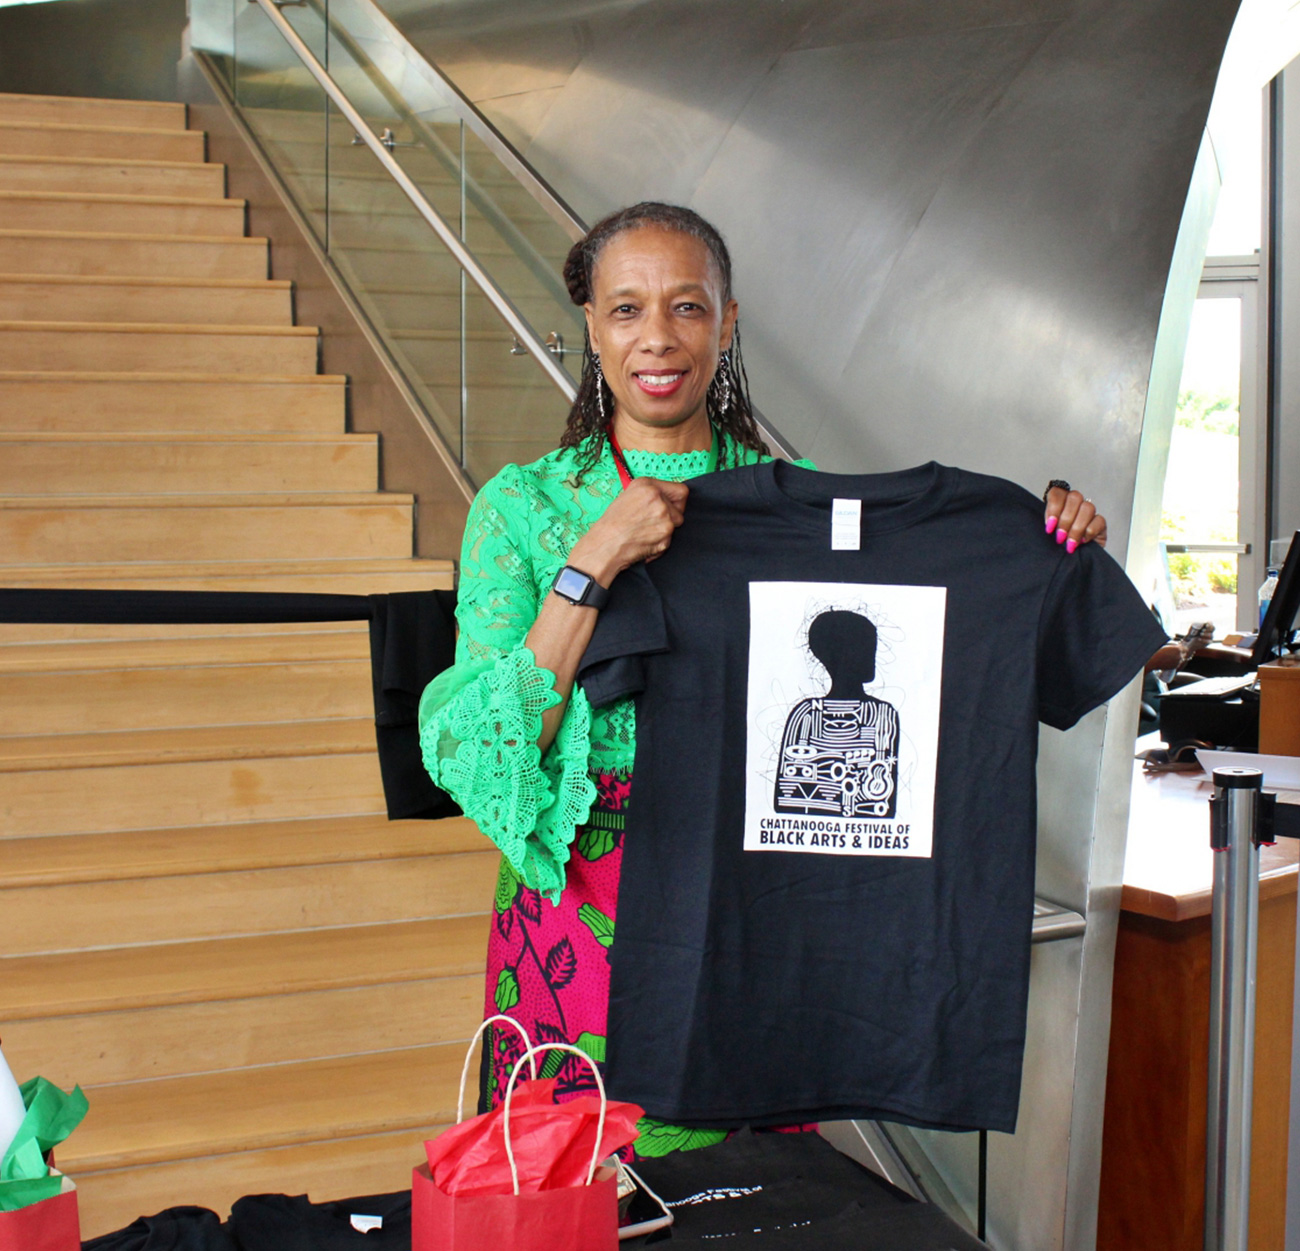 Volunteer holding up a Chattanooga Festival of Black Arts and Ideas shirt.